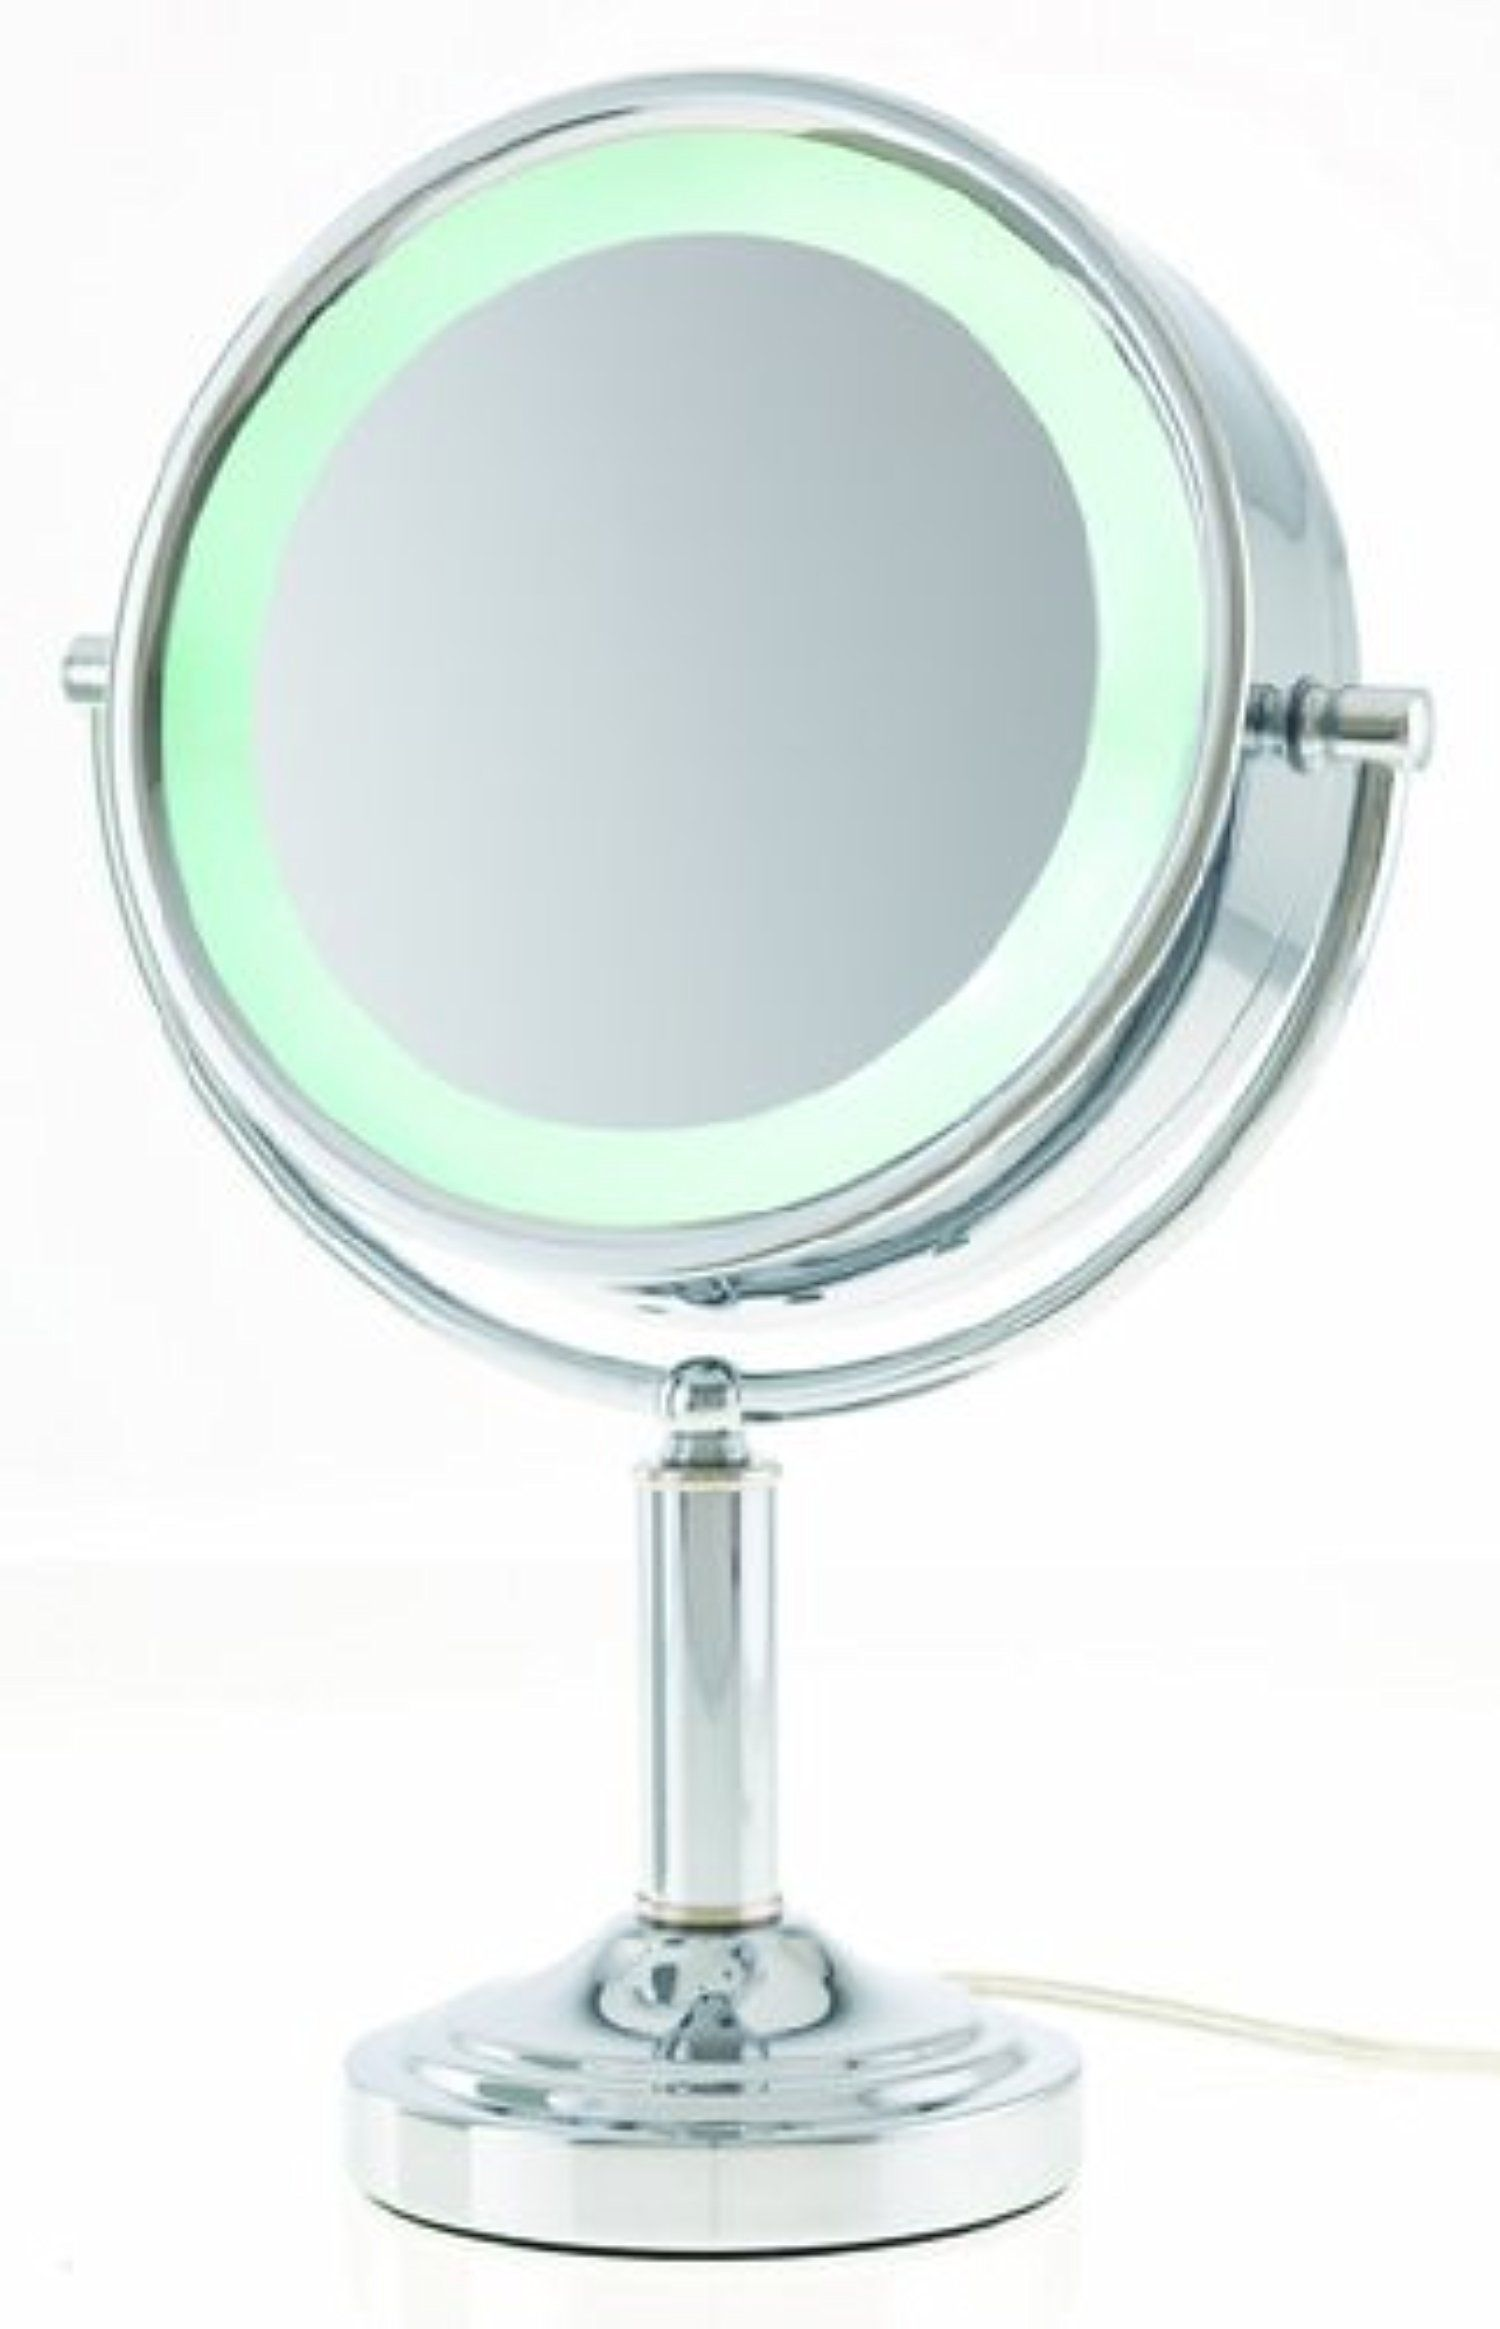 Danielle 15x Magnification L E D Lit Flip Vanity Mirror By Danielle Awesome Products Selected By Ann Makeup Mirror Makeup Mirror With Lights Makeup Mirrors